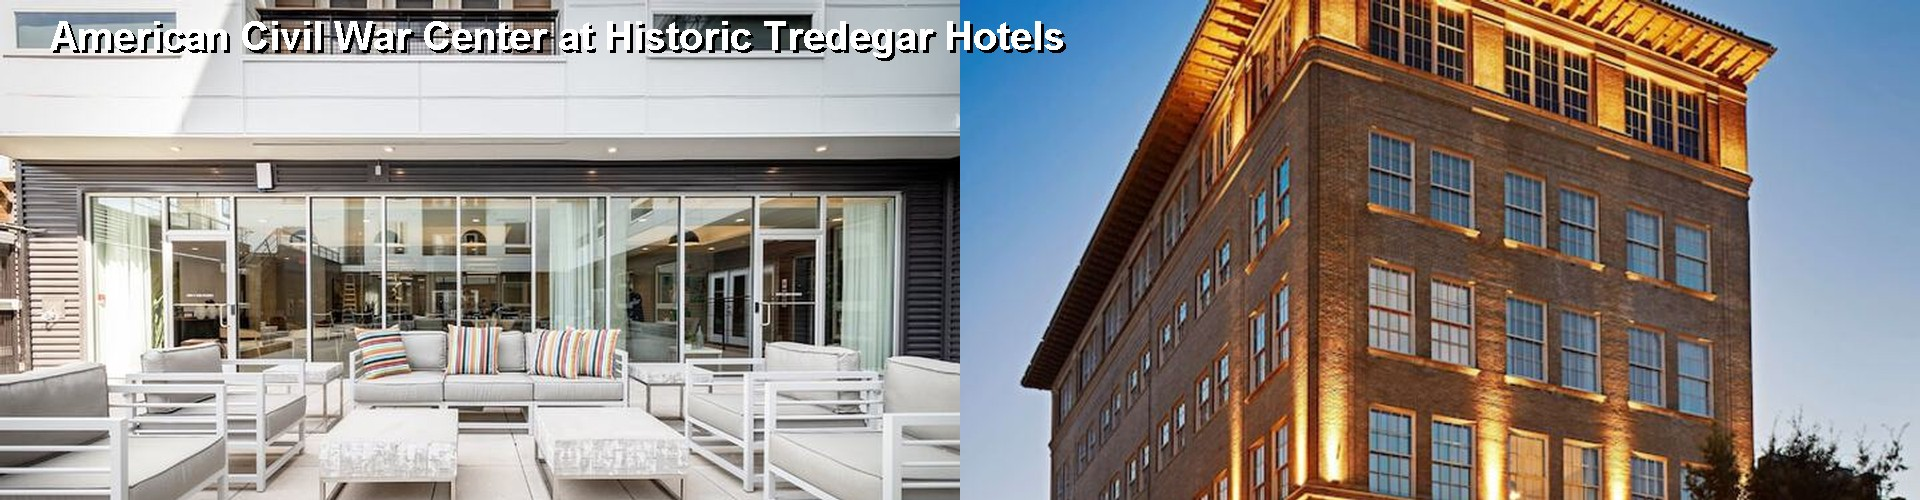 5 Best Hotels near American Civil War Center at Historic Tredegar